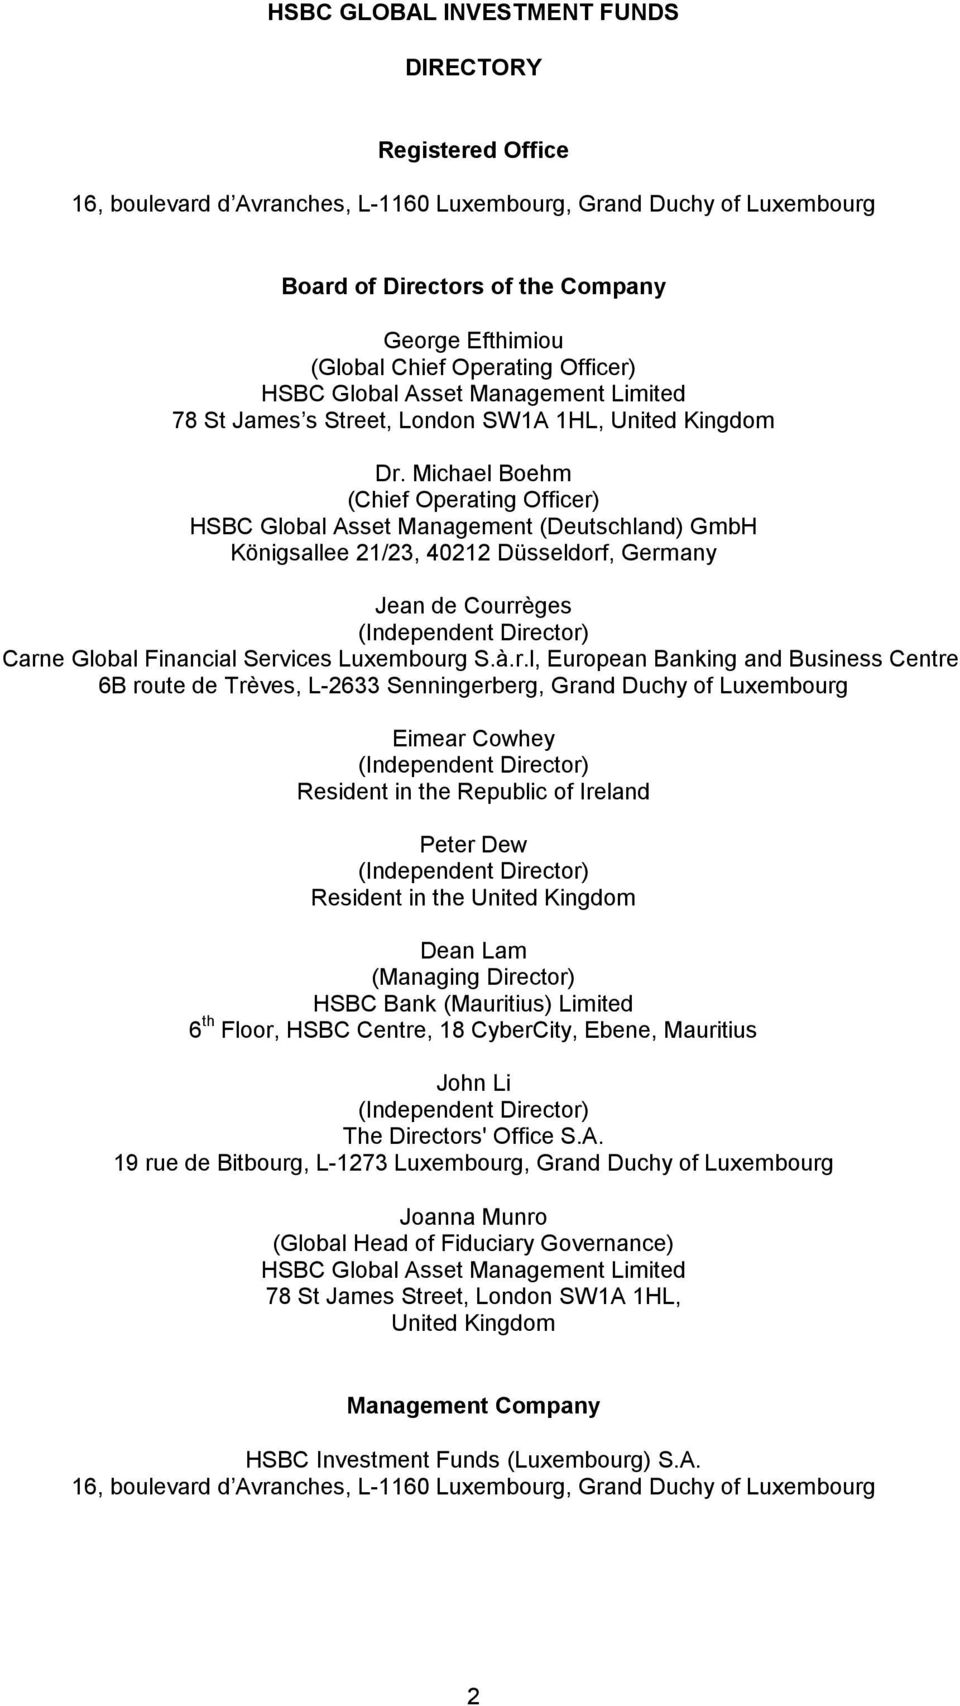 HSBC Global Investment Funds - PDF